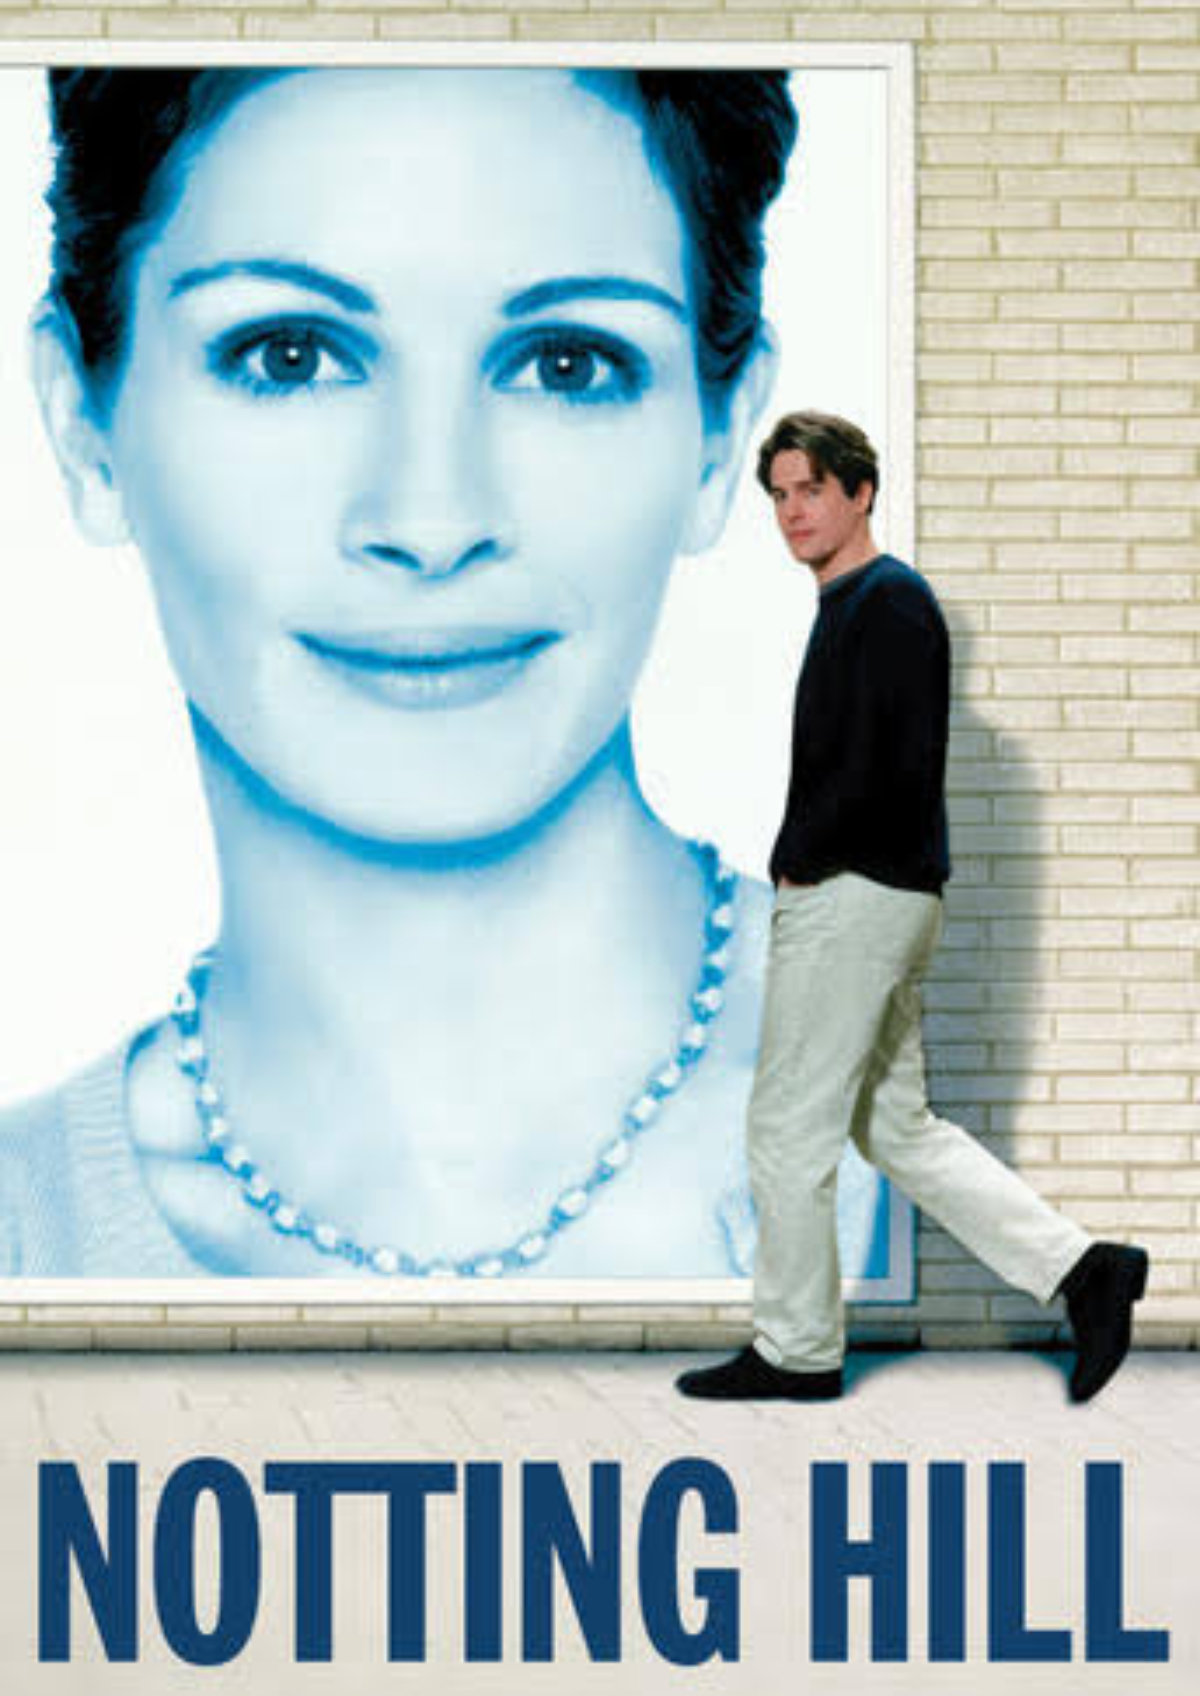 'Notting Hill' movie poster